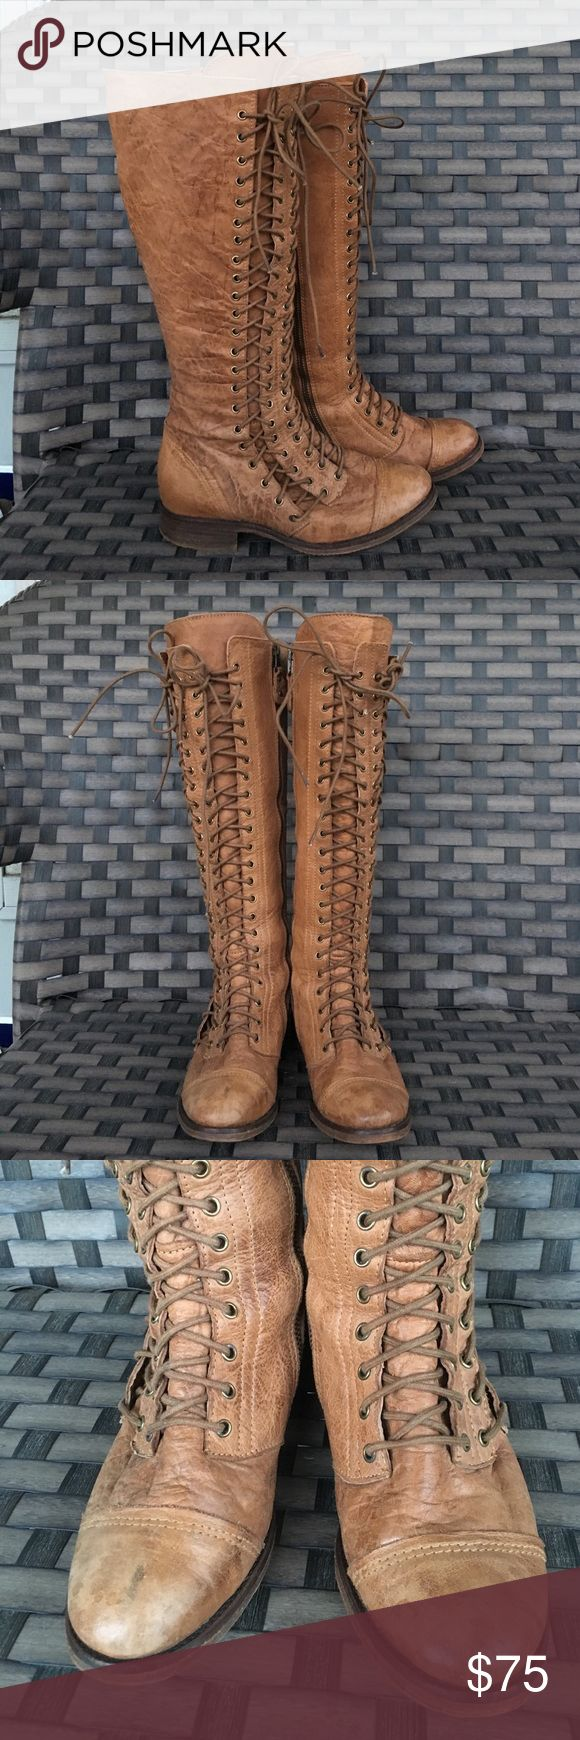 Matisse tall lace up boots 36 Some minor marks see pic otherwise great preowned condition Free People Shoes Heeled Boots